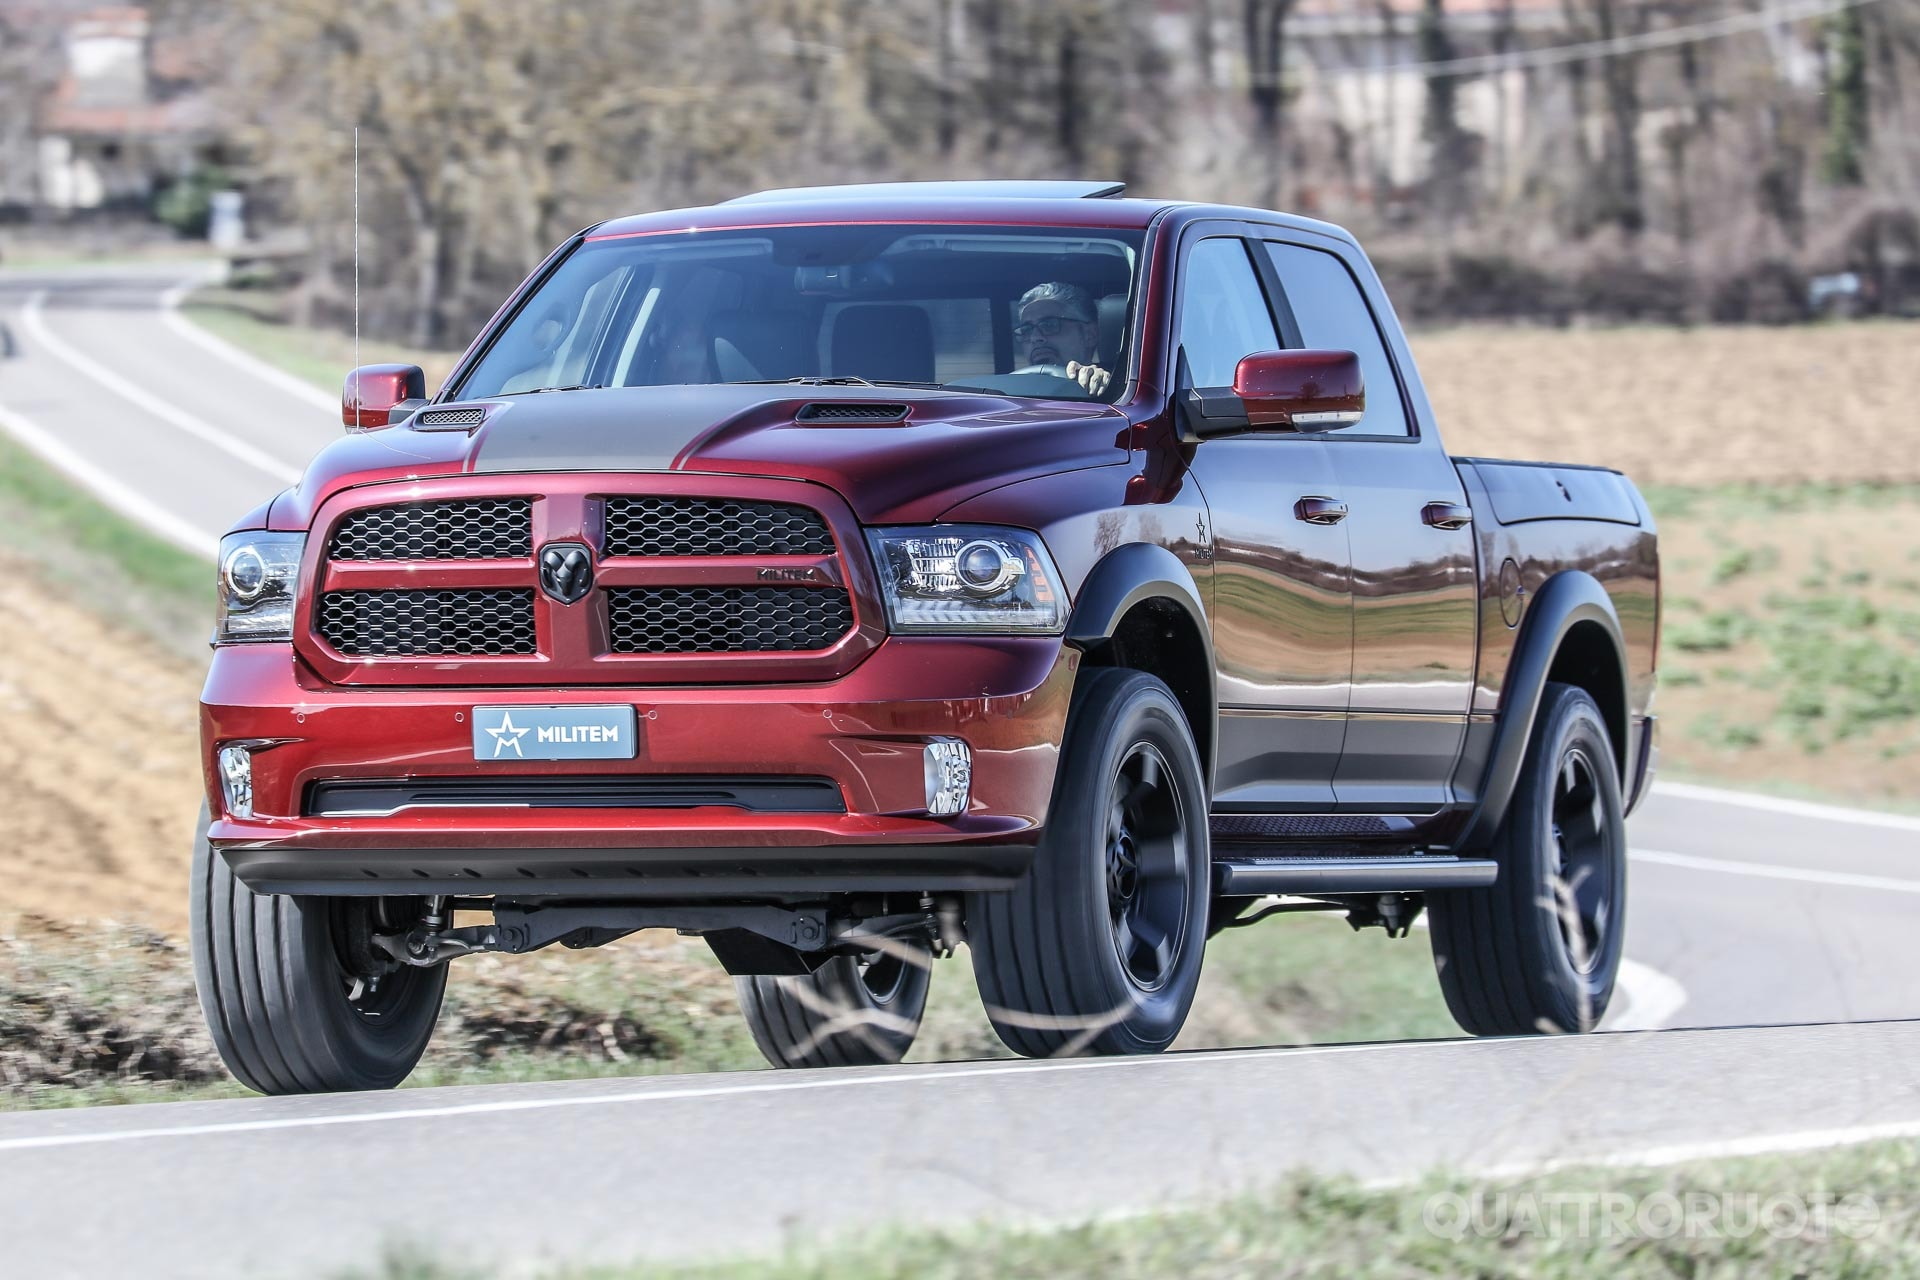 Al volante del Ram 1500 RX Militem - VIDEO